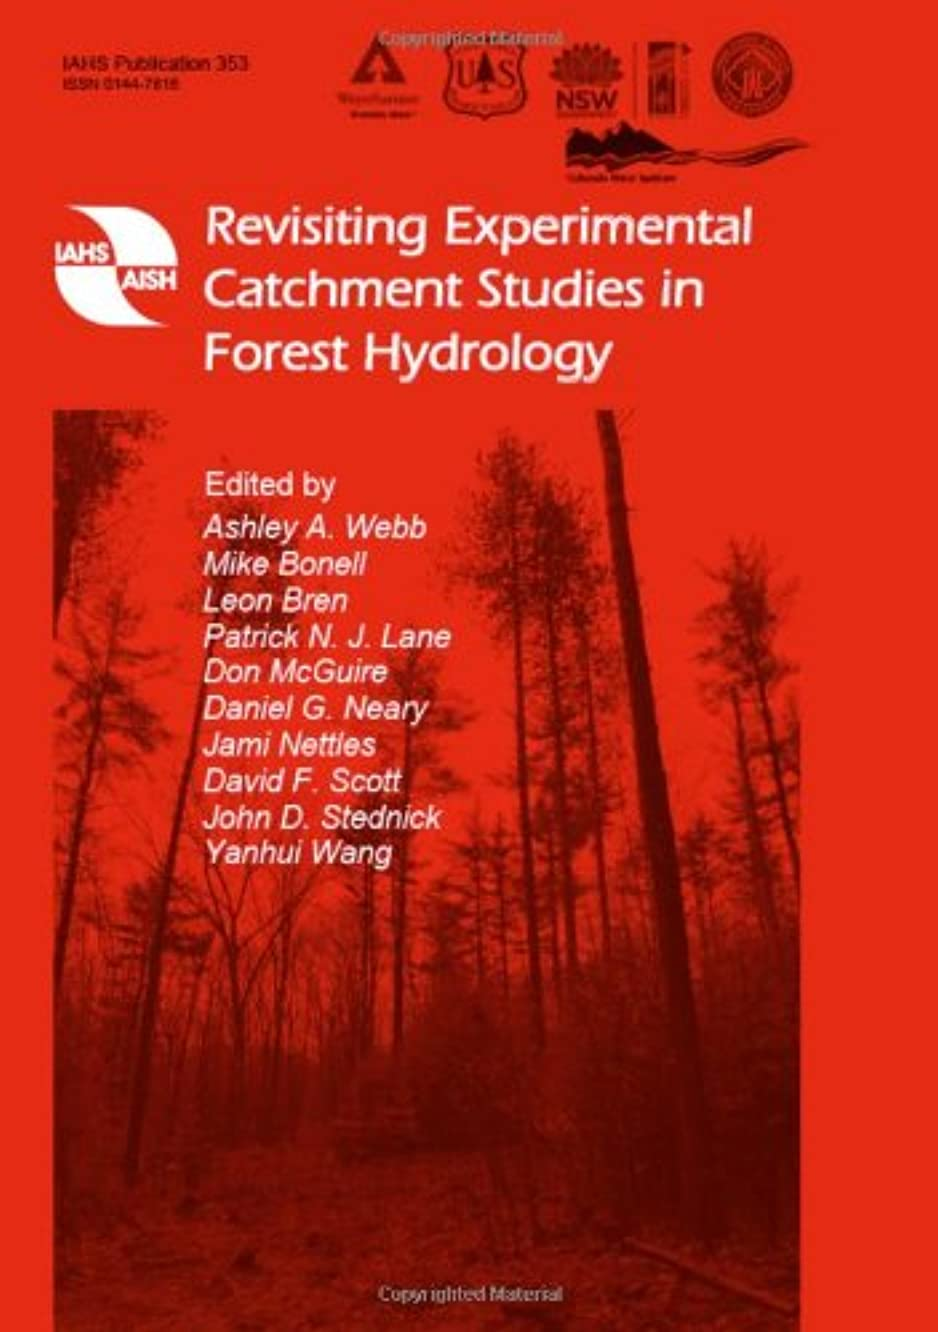 Revisiting Experimental Catchment Studies in Forest Hydrology